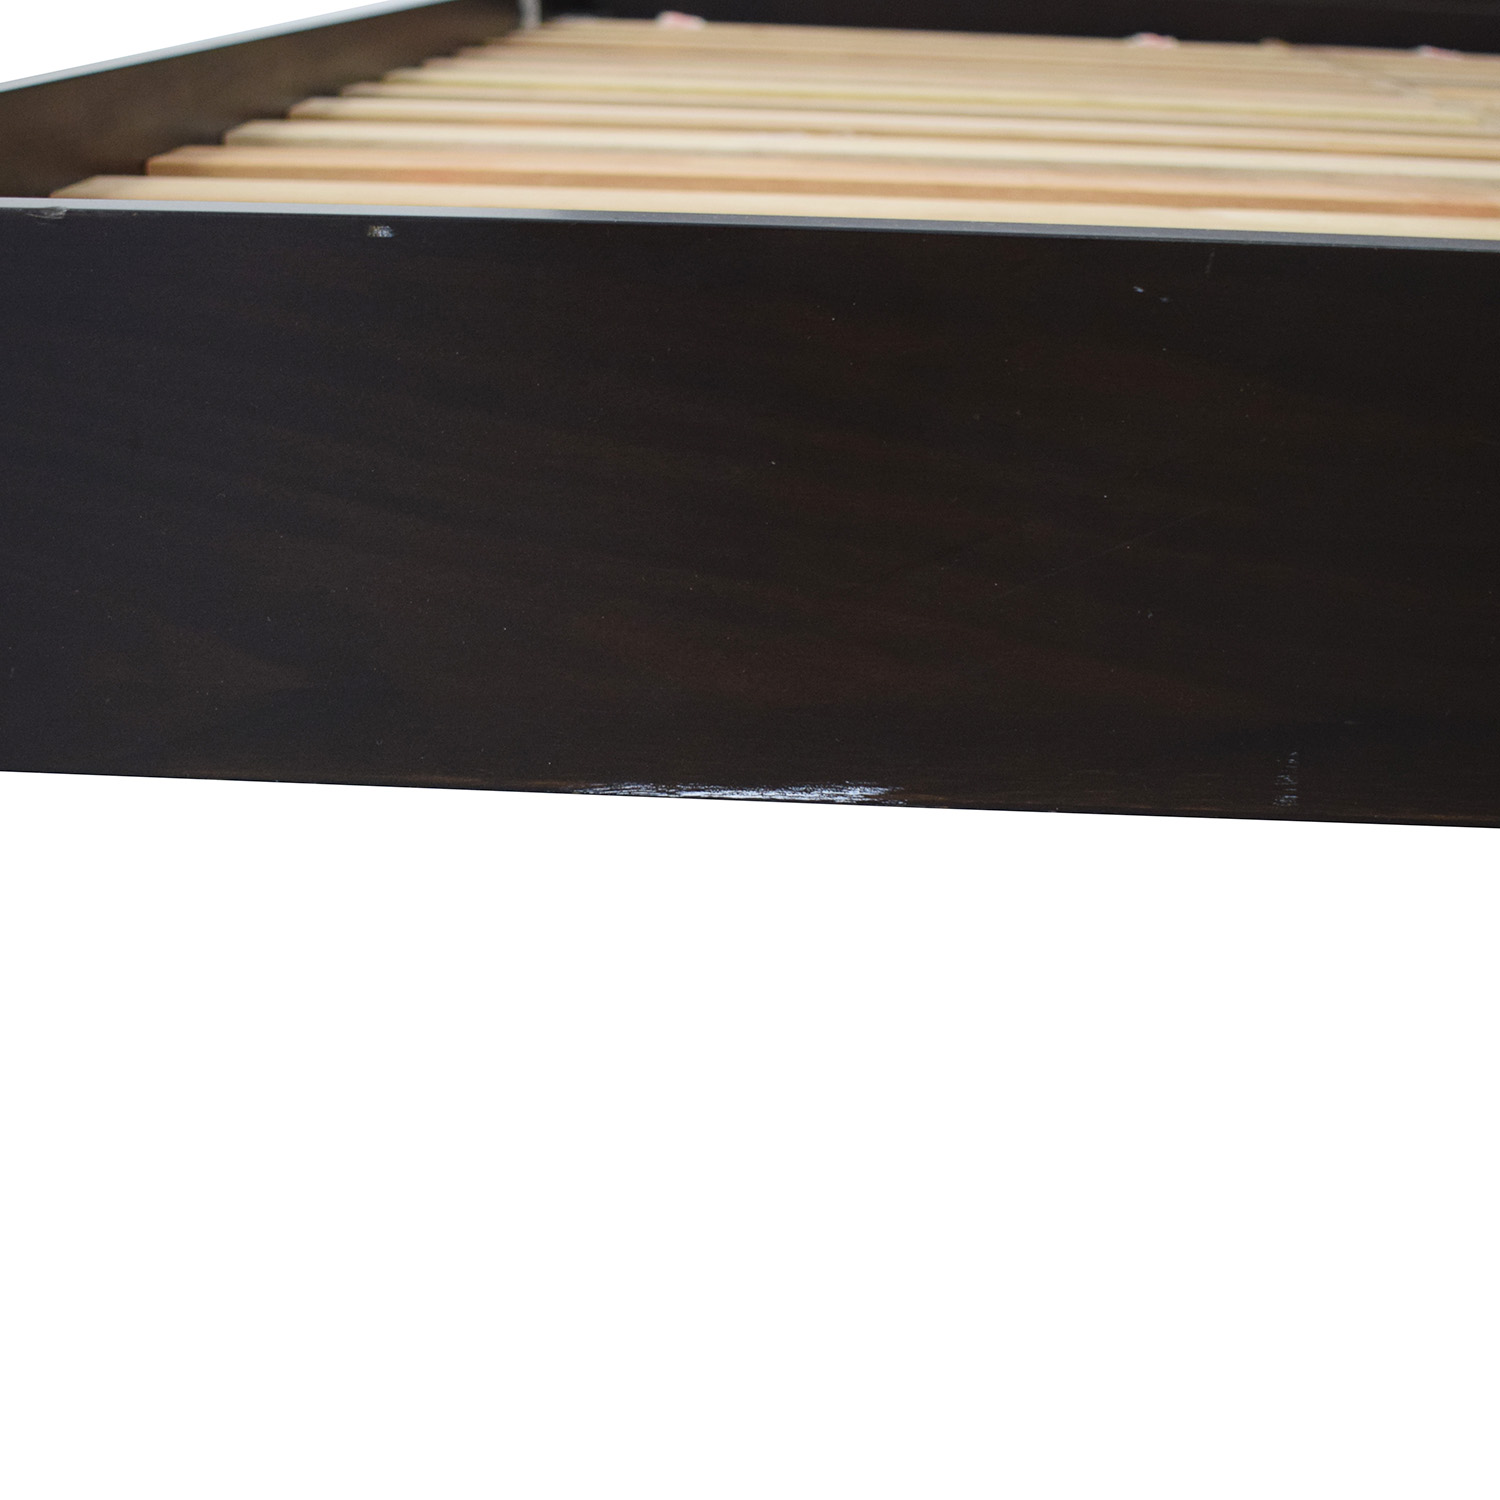 West Elm West Elm Low Wood Cutout Queen Bed used